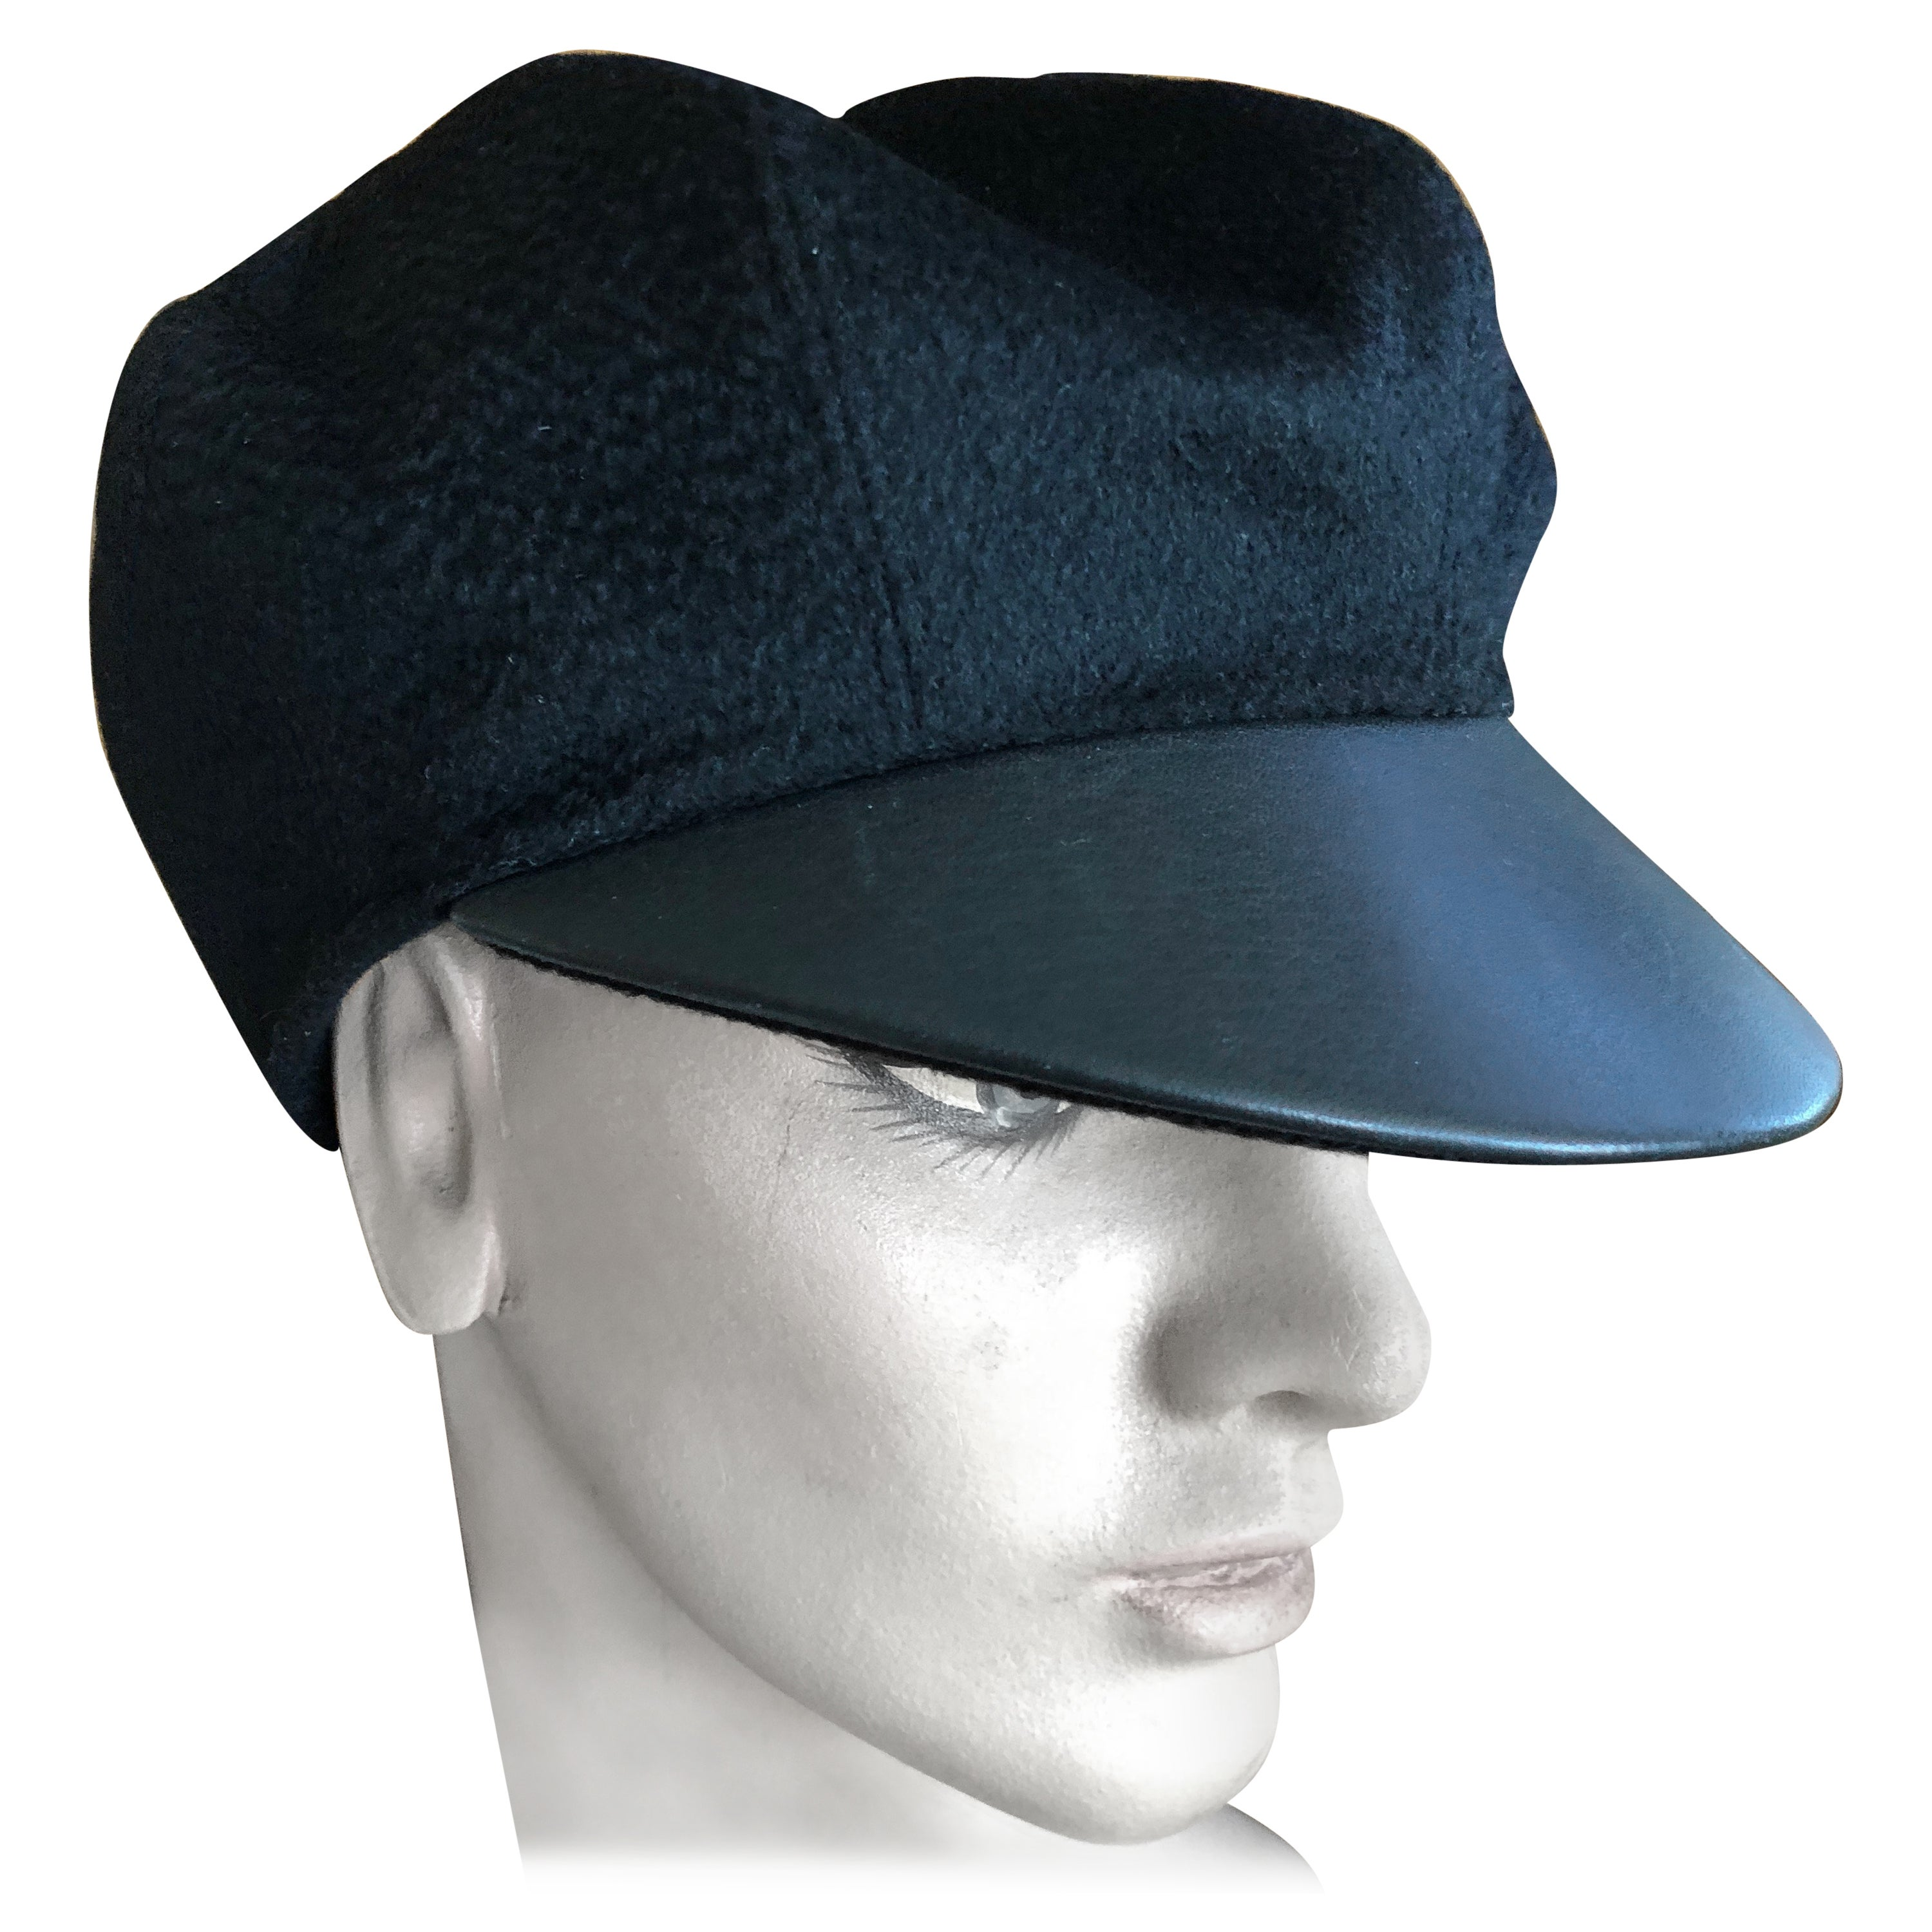 67b43912f8b97 Hermes Black Pure Cashmere Newsboy Hat with Leather Visor For Sale at  1stdibs